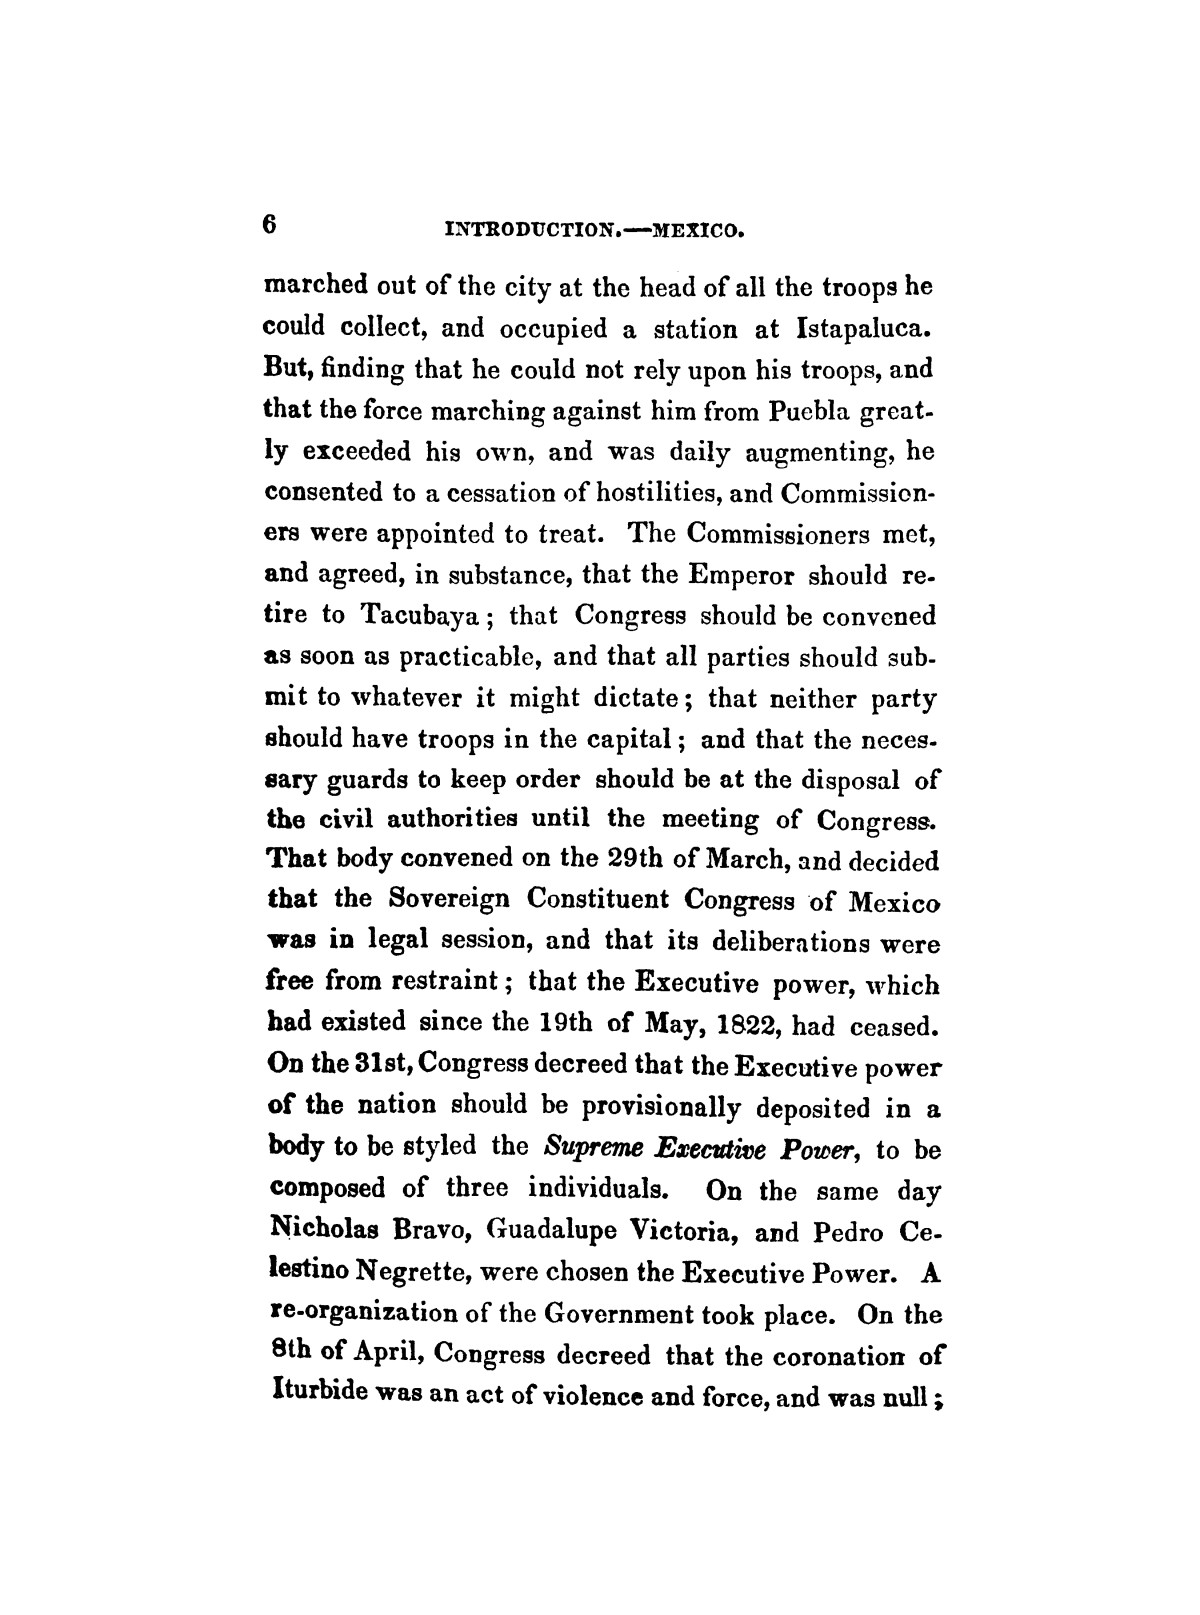 History of the revolution in Texas, particularly of the war of 1835 & '36; together with the latest geographical, topographical, and statistical accounts of the country, from the most authentic sources. Also, an appendix. By the Rev. C. Newell.                                                                                                      [Sequence #]: 18 of 227